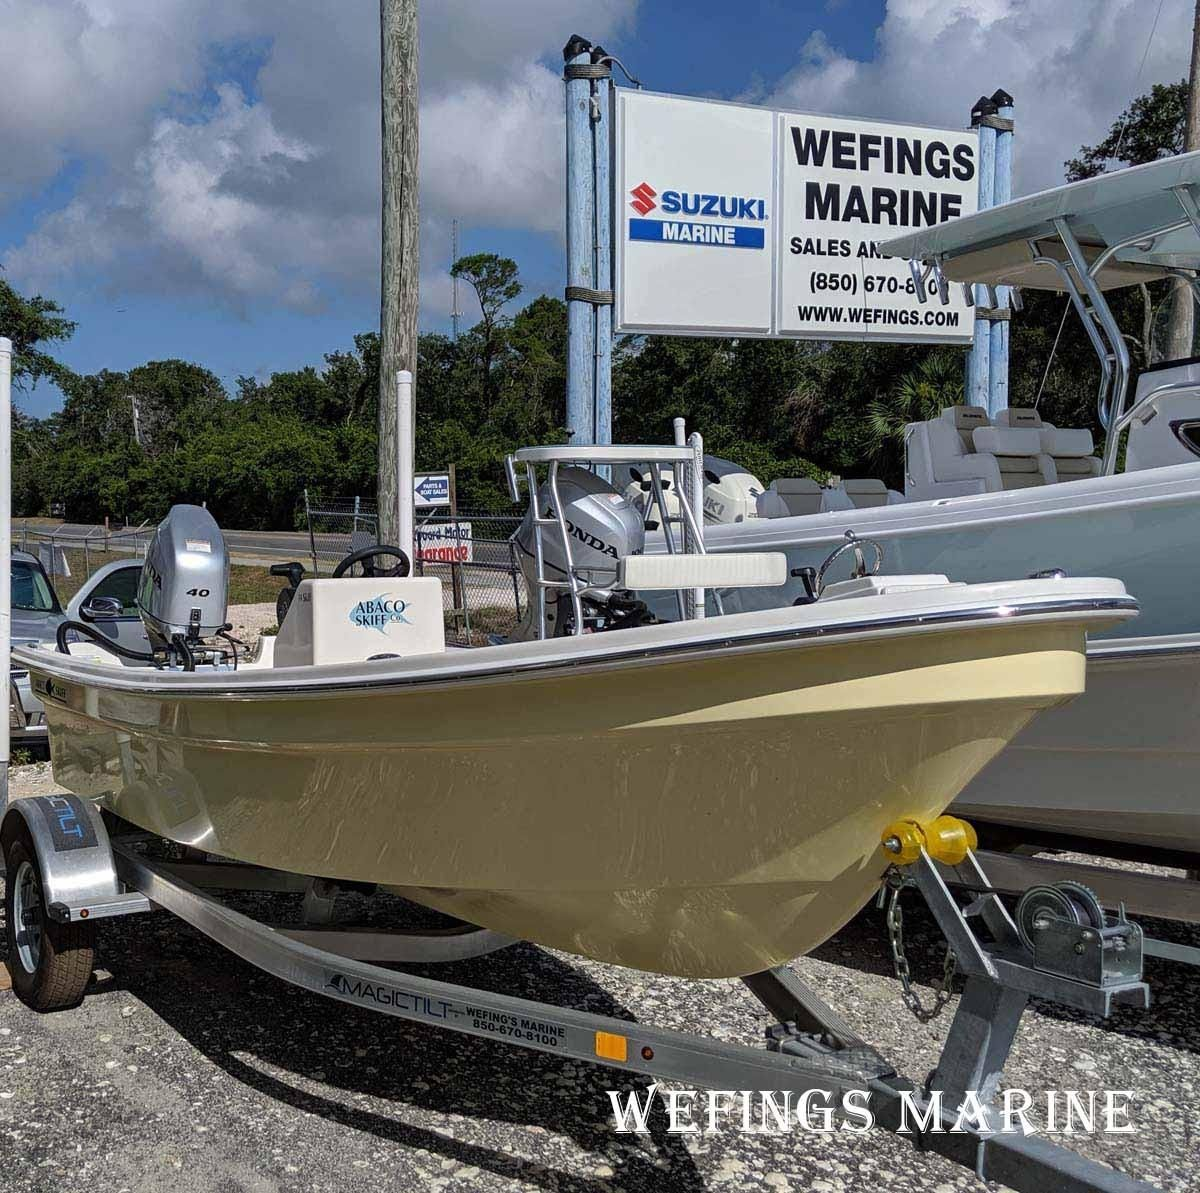 Skiffs For Sale >> 2019 New Abaco 14 Skiff Commercial Boat For Sale 16 900